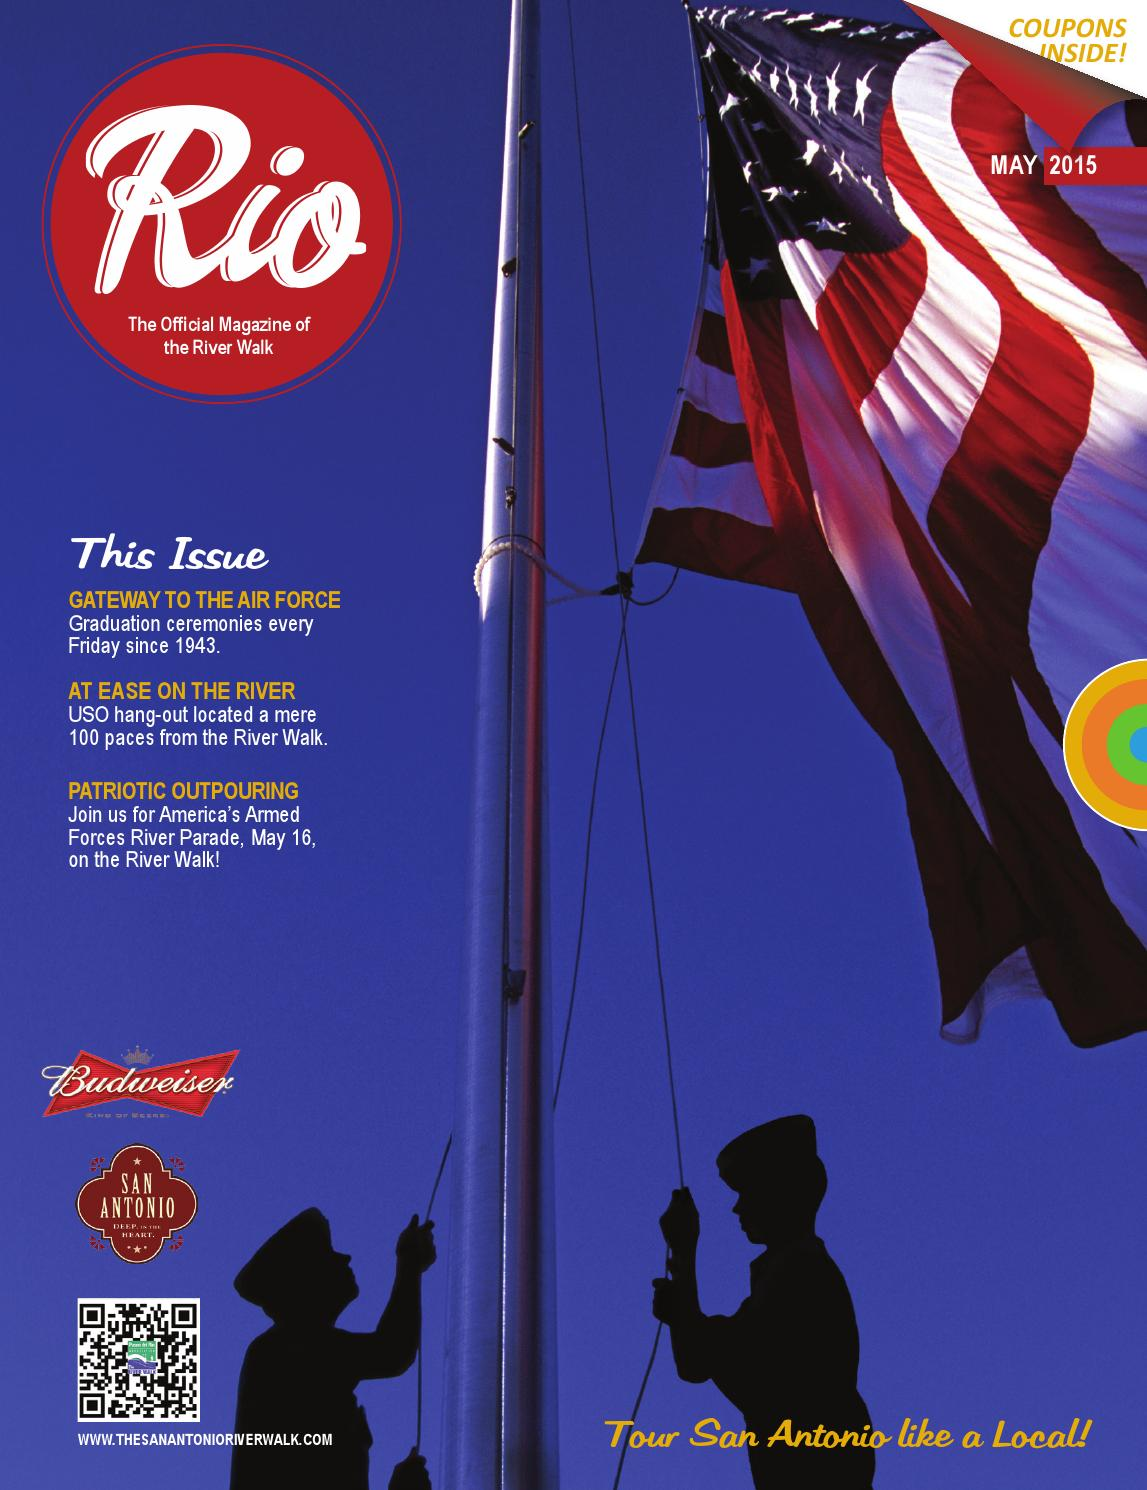 rio magazine may 2015 by traveling blender - issuu